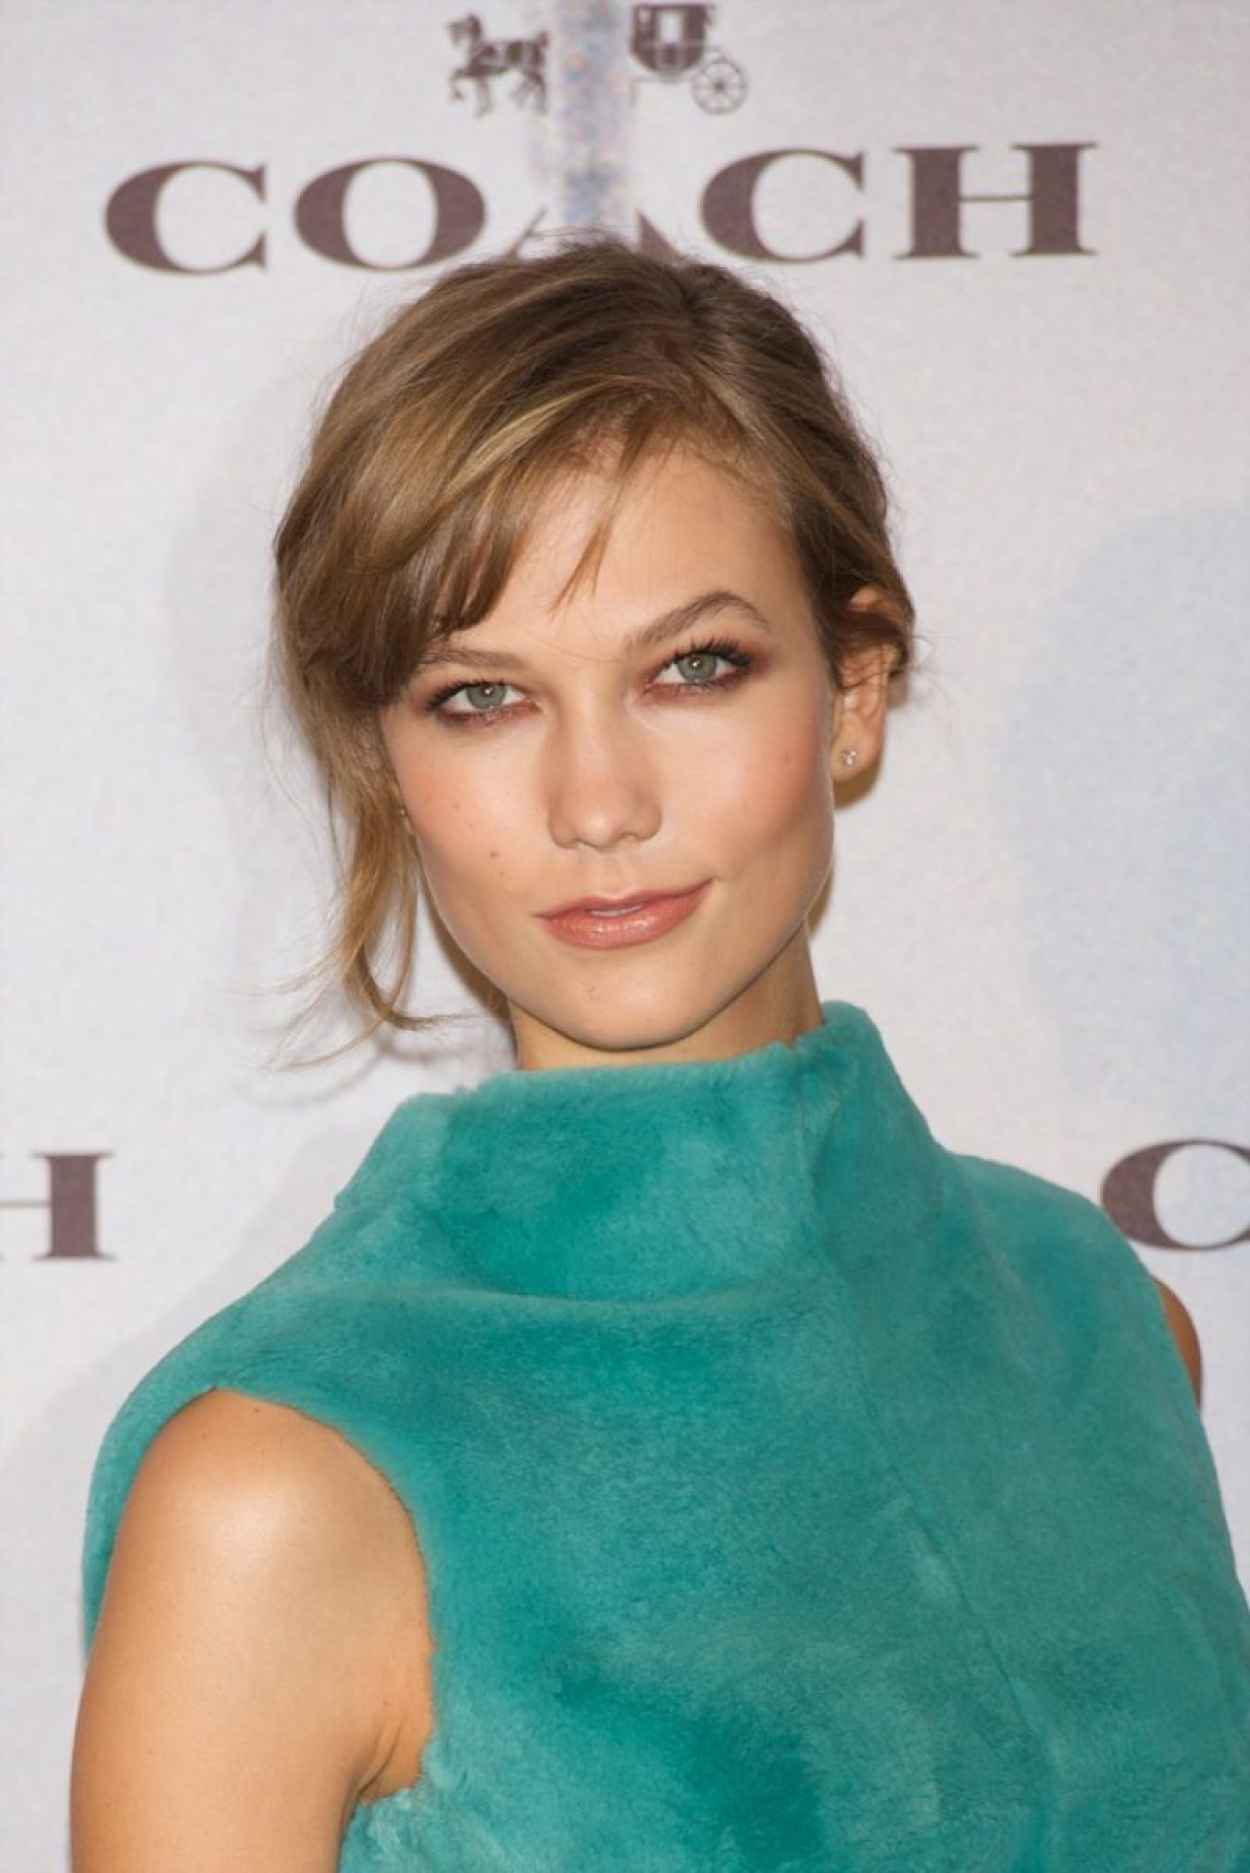 Karlie Kloss Attends Coach Boutique Opening in Madrid - November 2015-1